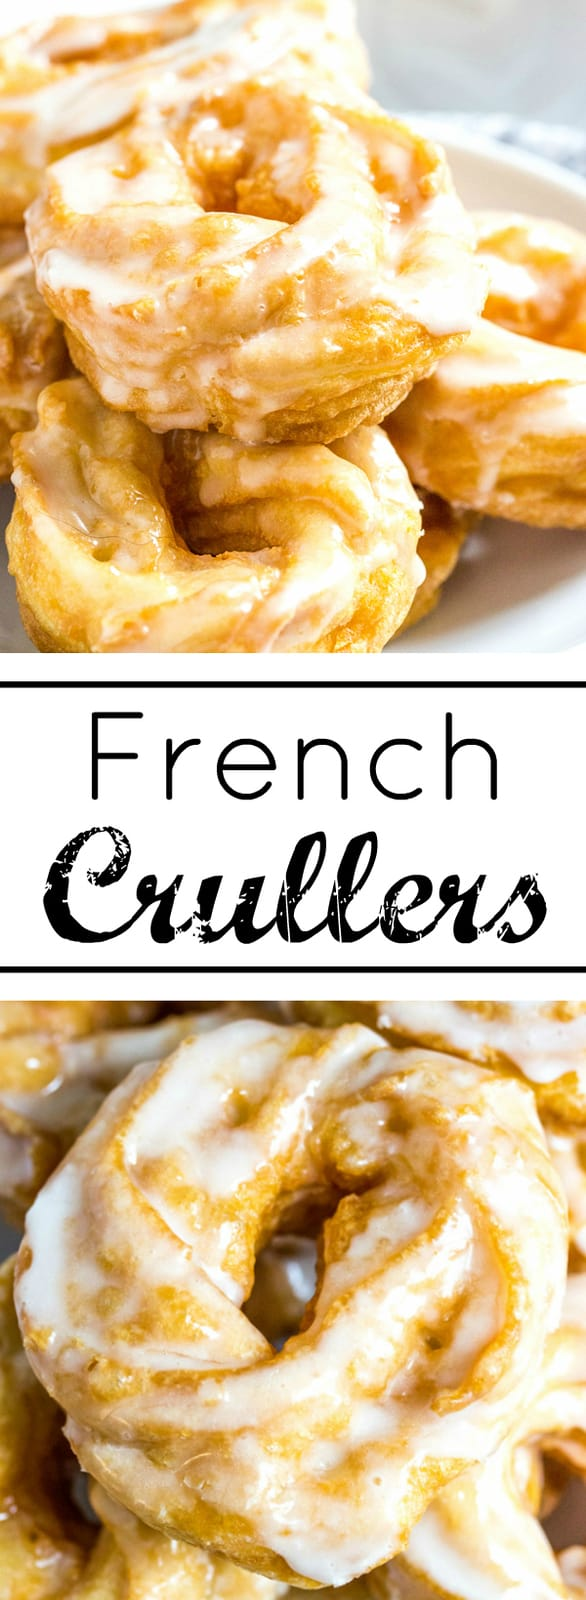 French Cruller Doughnuts Recipe — Dishmaps